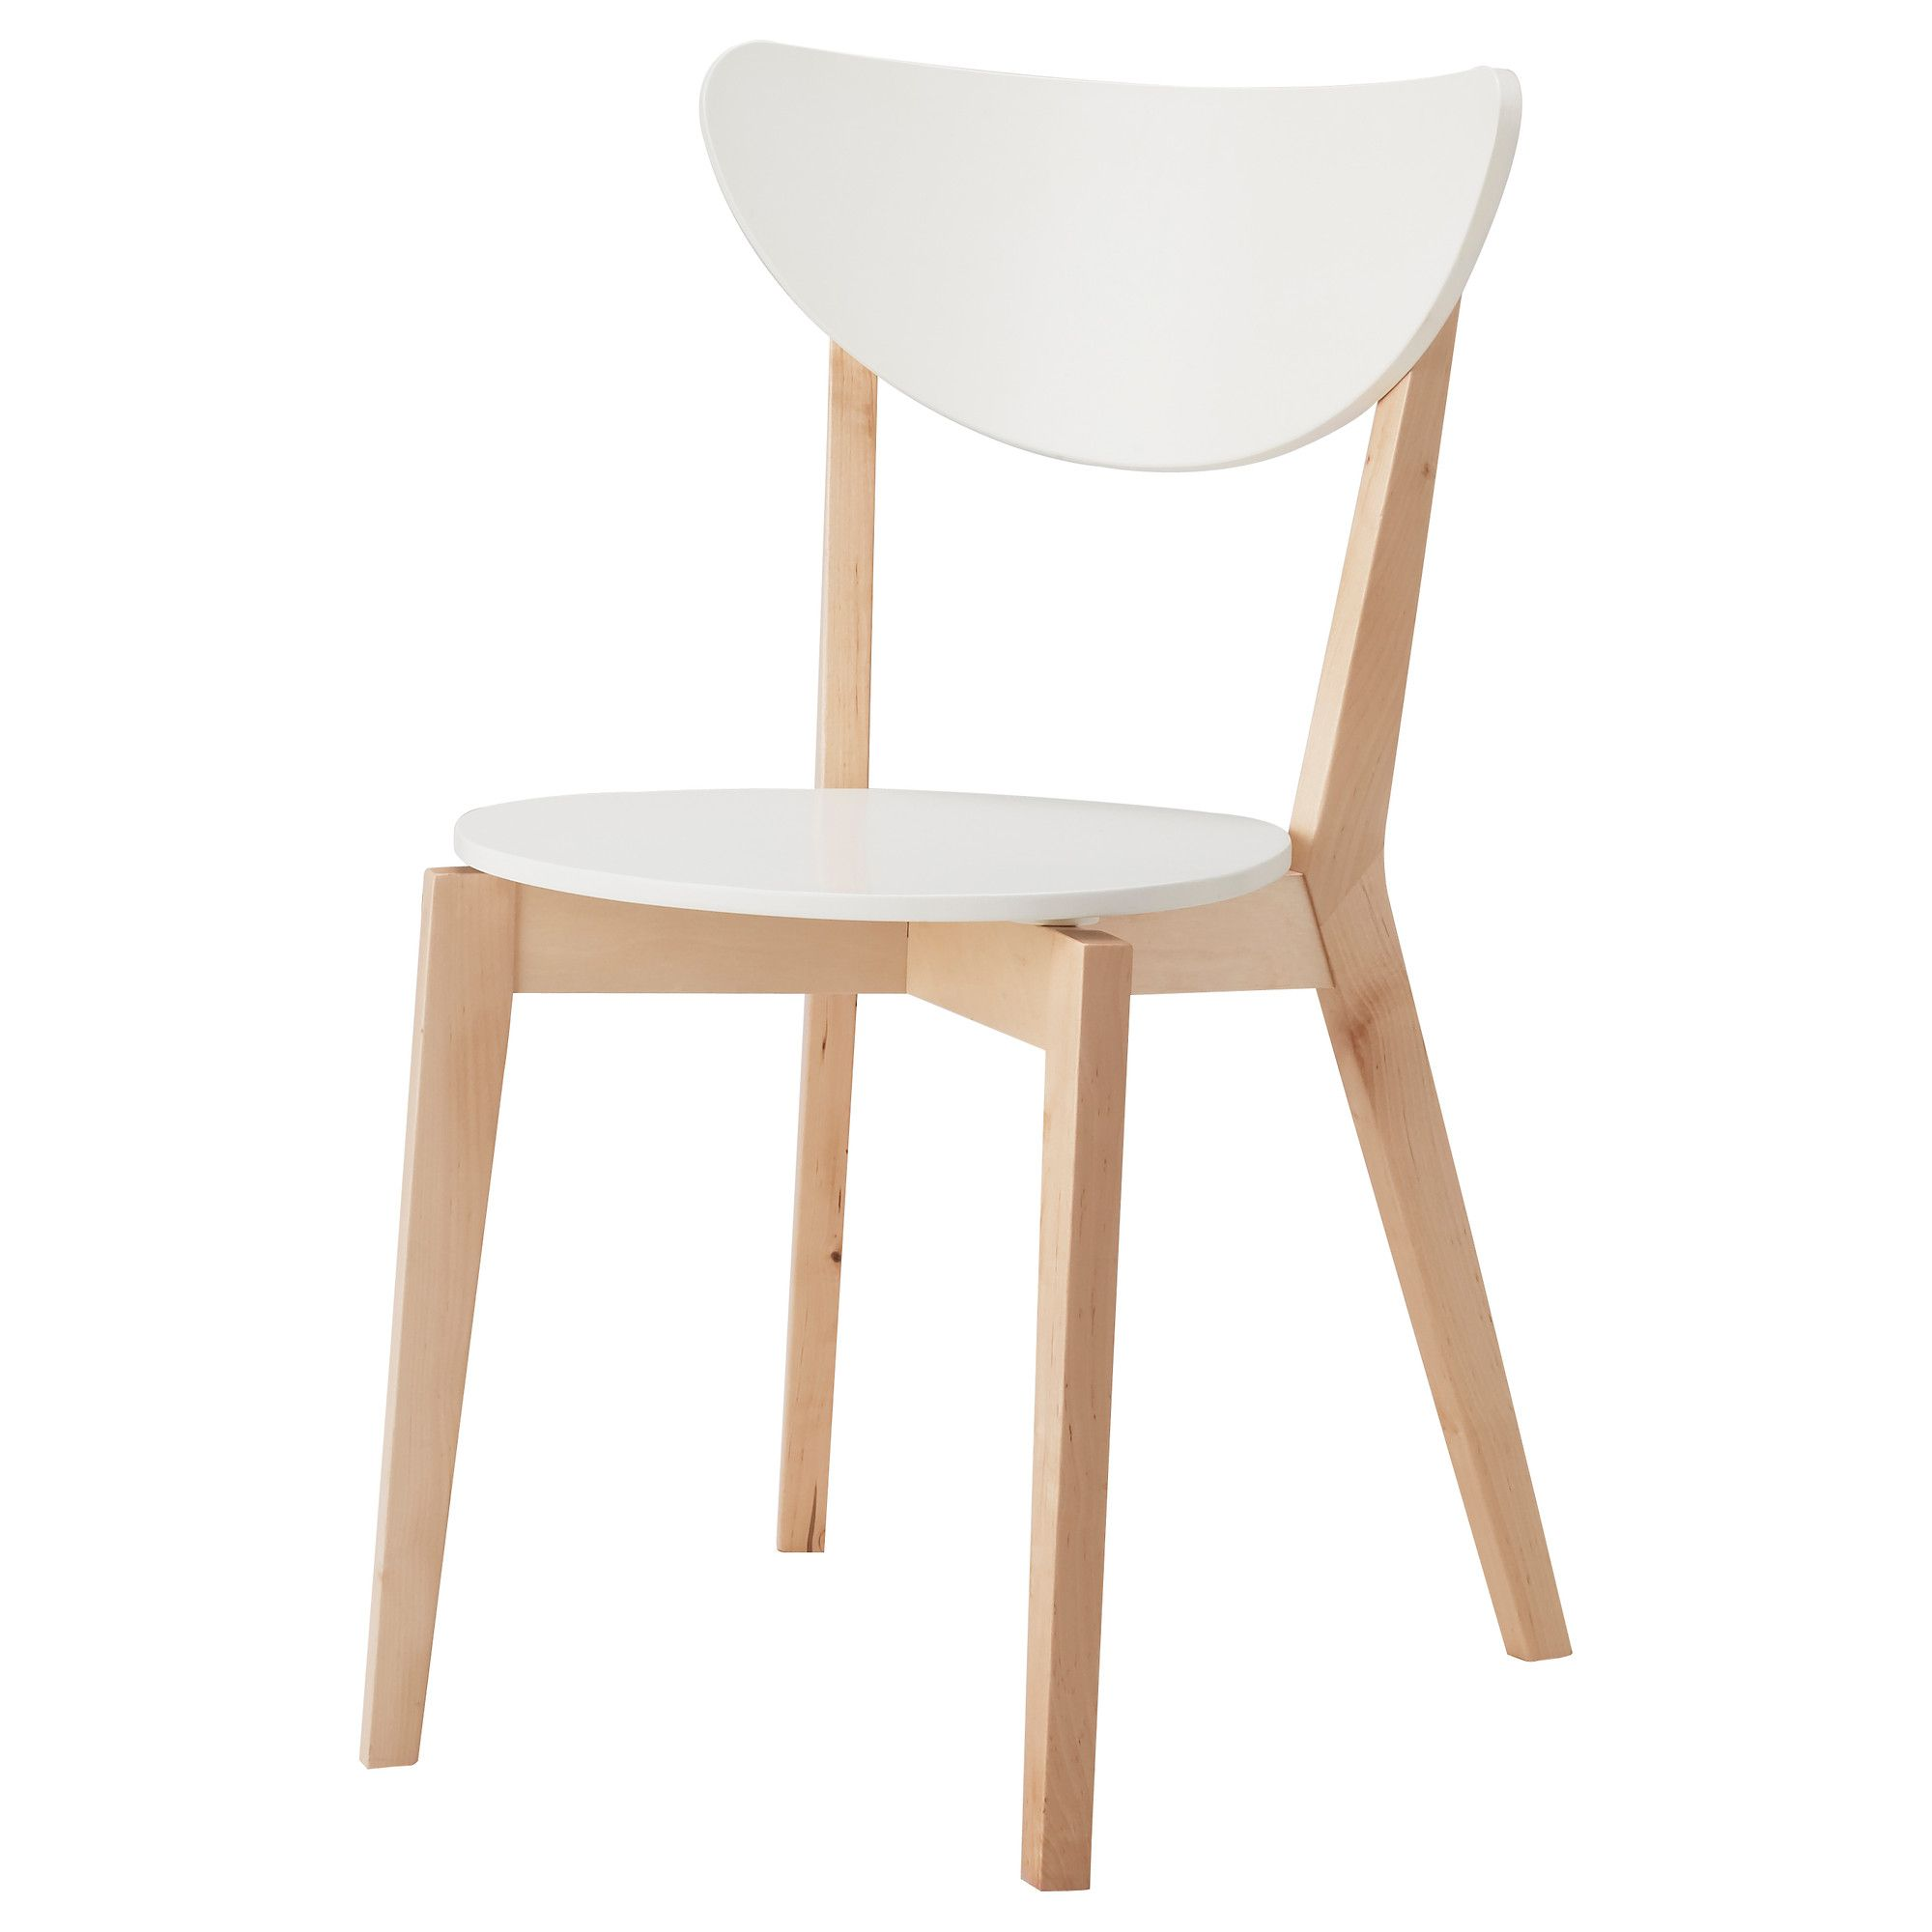 Dining Chair Ikea $80 Approx Each  Taupo  Pinterest  Chairs Amusing Ikea Dining Room Chairs Sale Inspiration